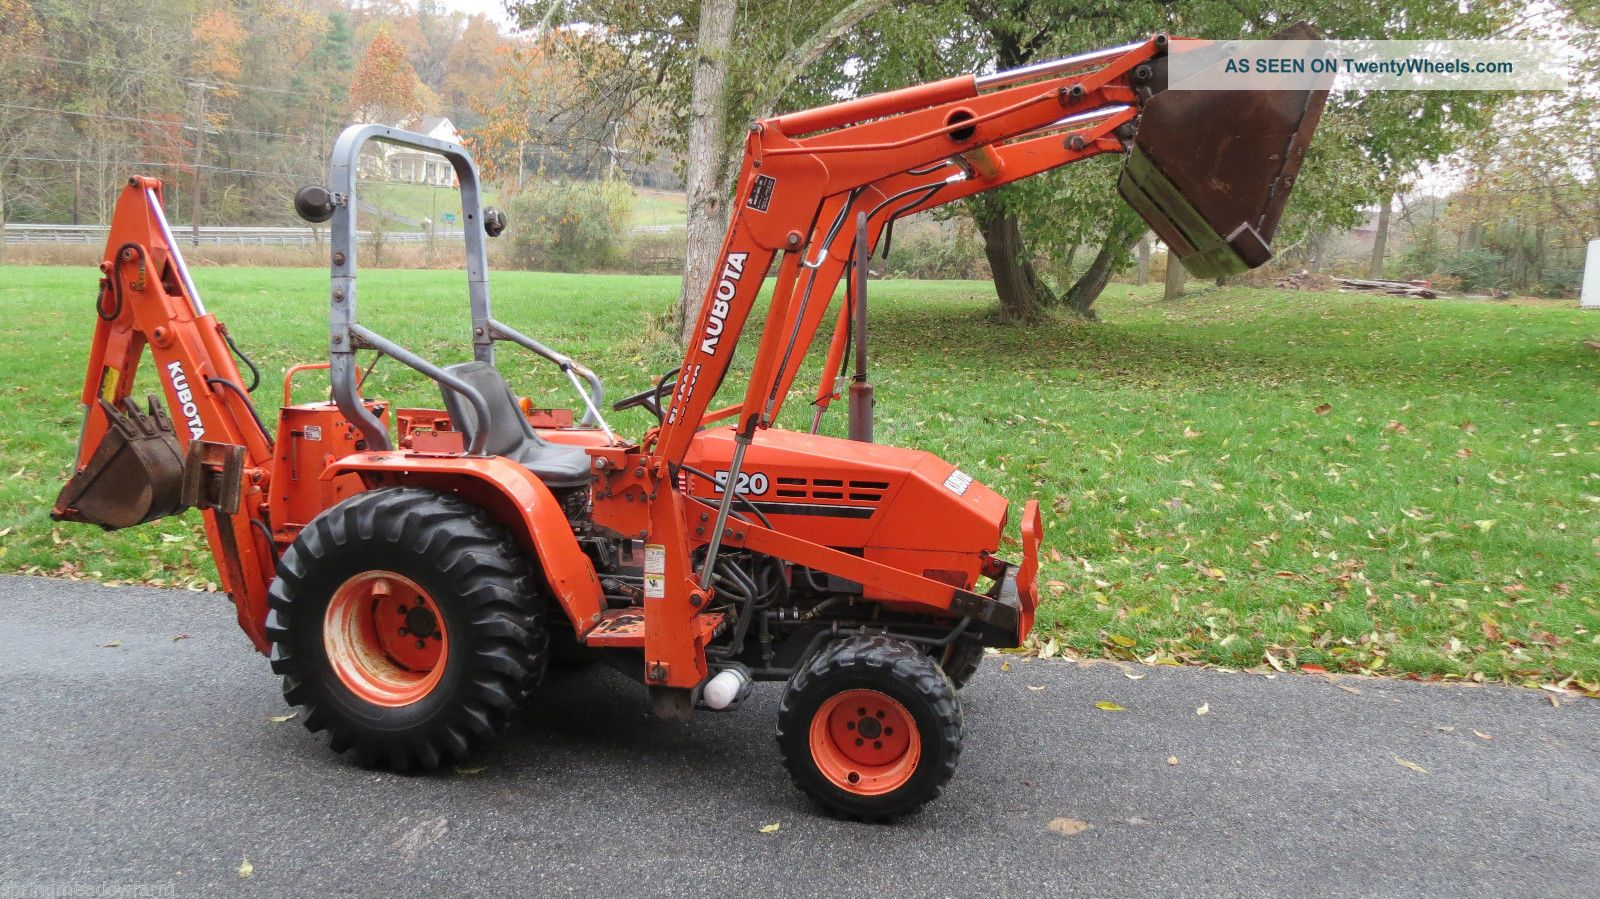 1996 Kubota B20 Hydrostatic 3pt Hitch Pto 4x4 Compact Tractor Loader Backhoe H Tractors photo